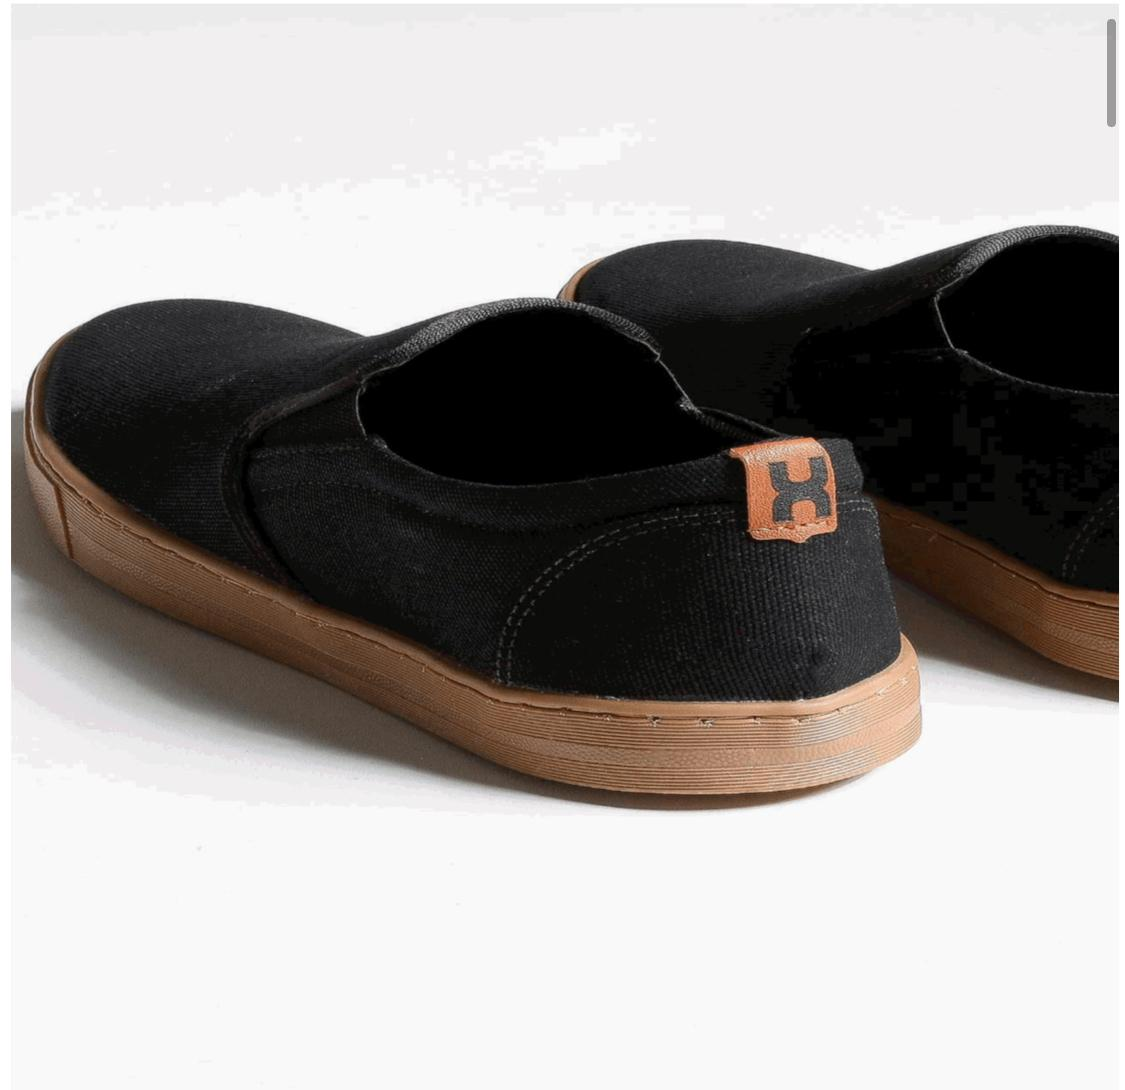 Tênis X-Shoes Late Masculino Txc Lona e Borracha Liso - Preto